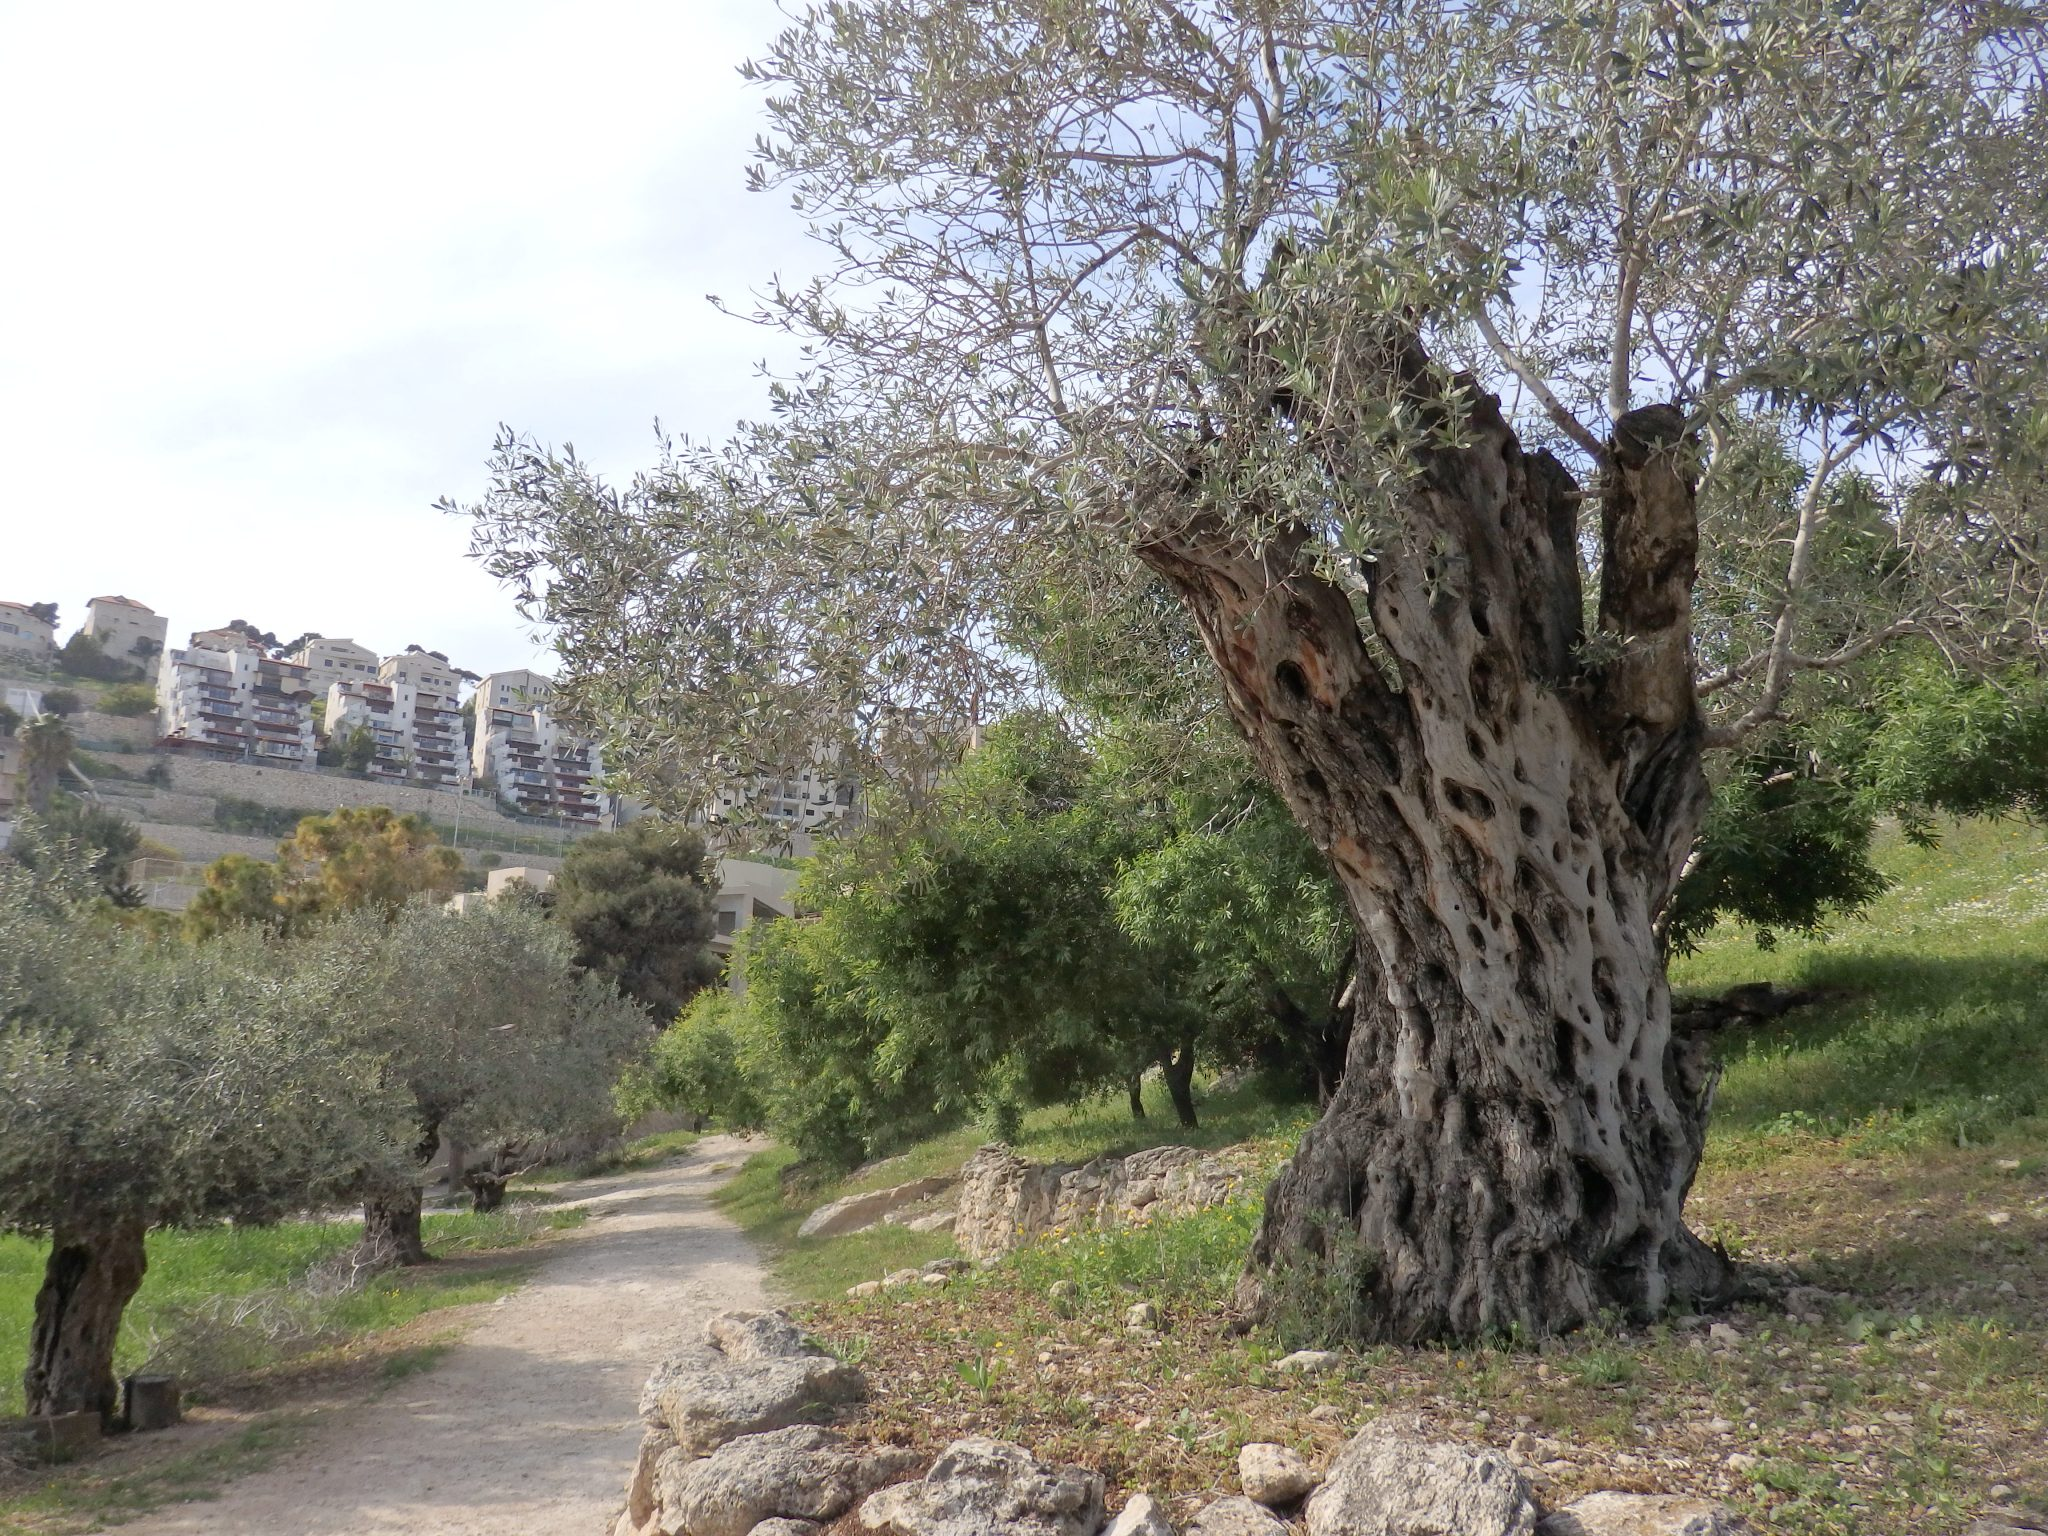 The olive grove, with modern apartment buildings overlooking the site. Biblical Nazareth.